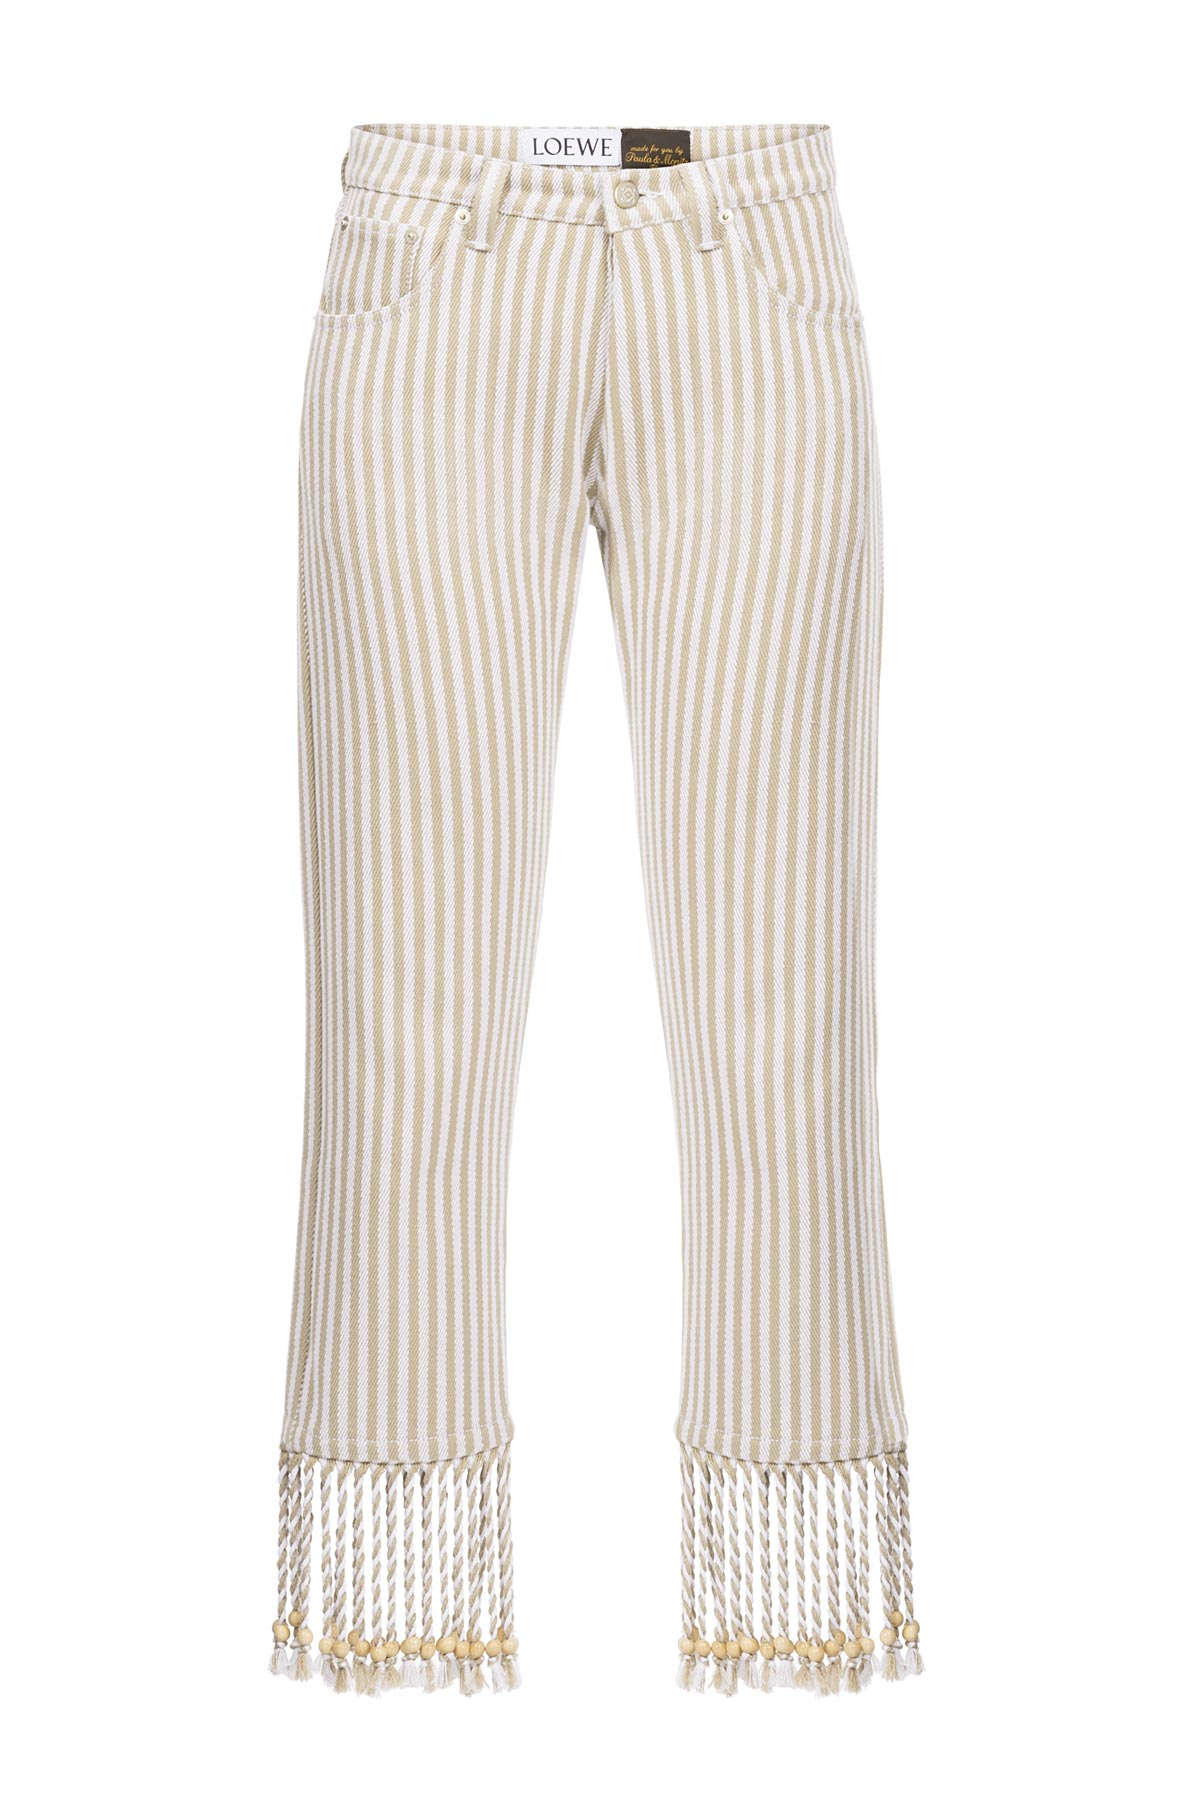 LOEWE 5 Pockets Paula Stripes Sand/White front